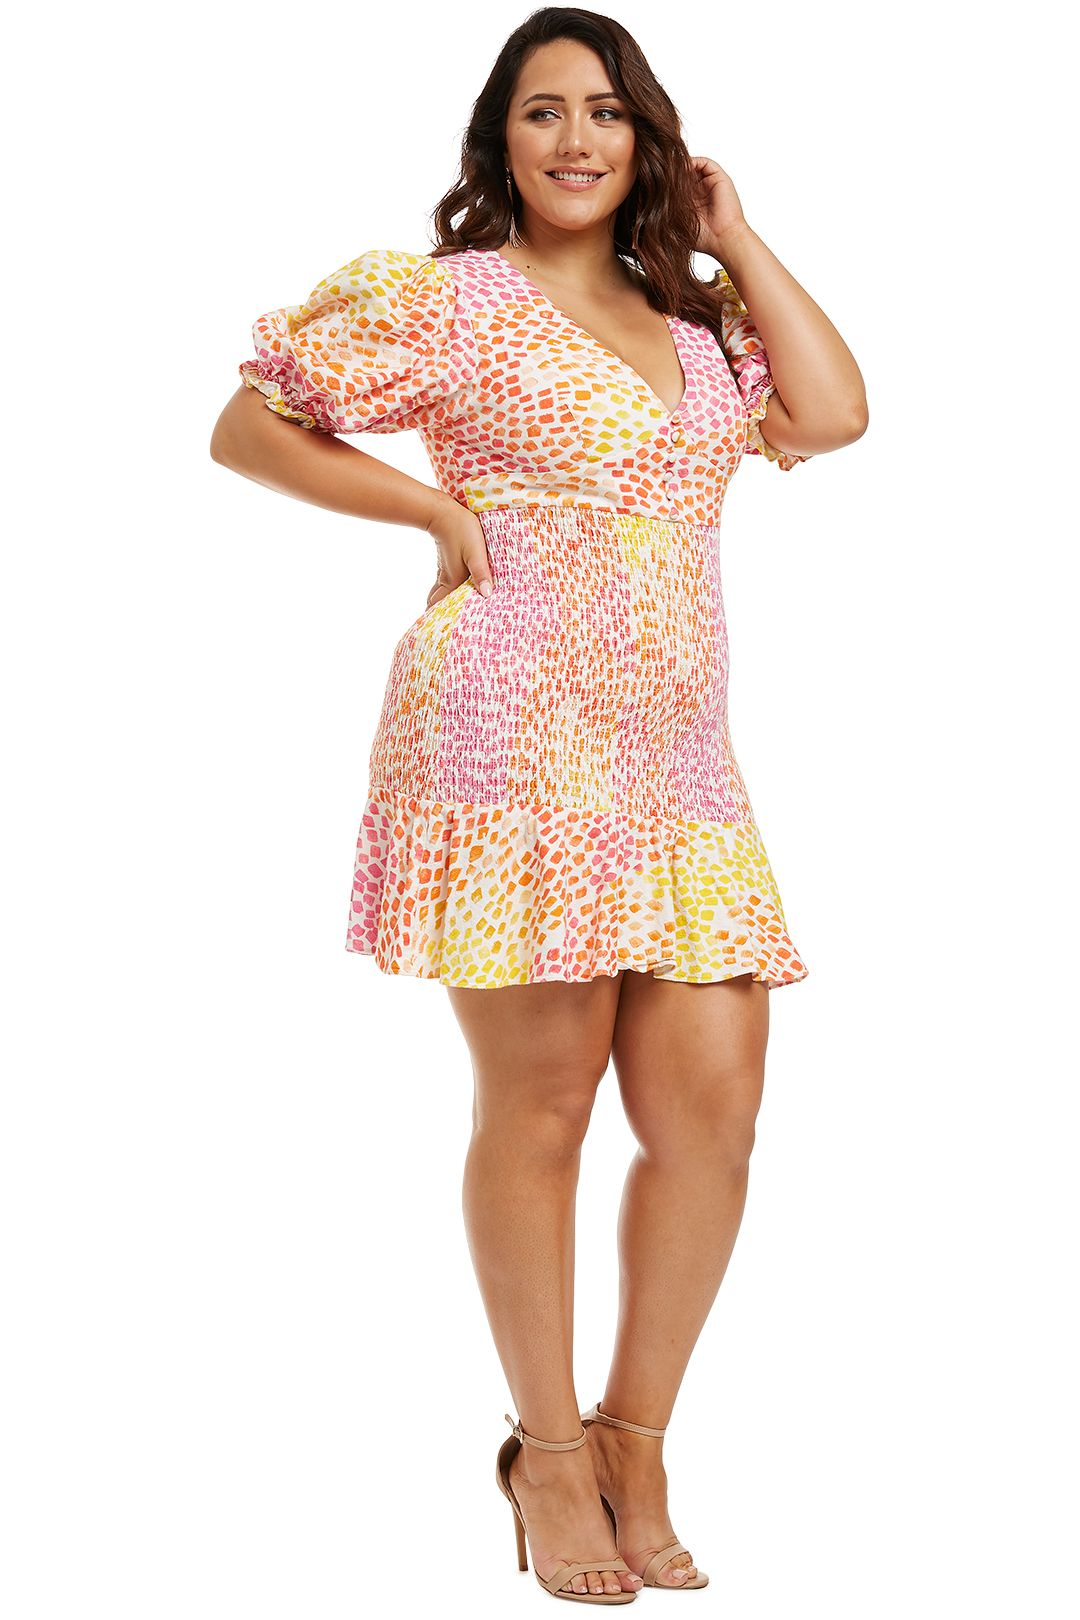 Ministry-of-Style-Gazania-Mini-Dress-Pink-Yellow-Side